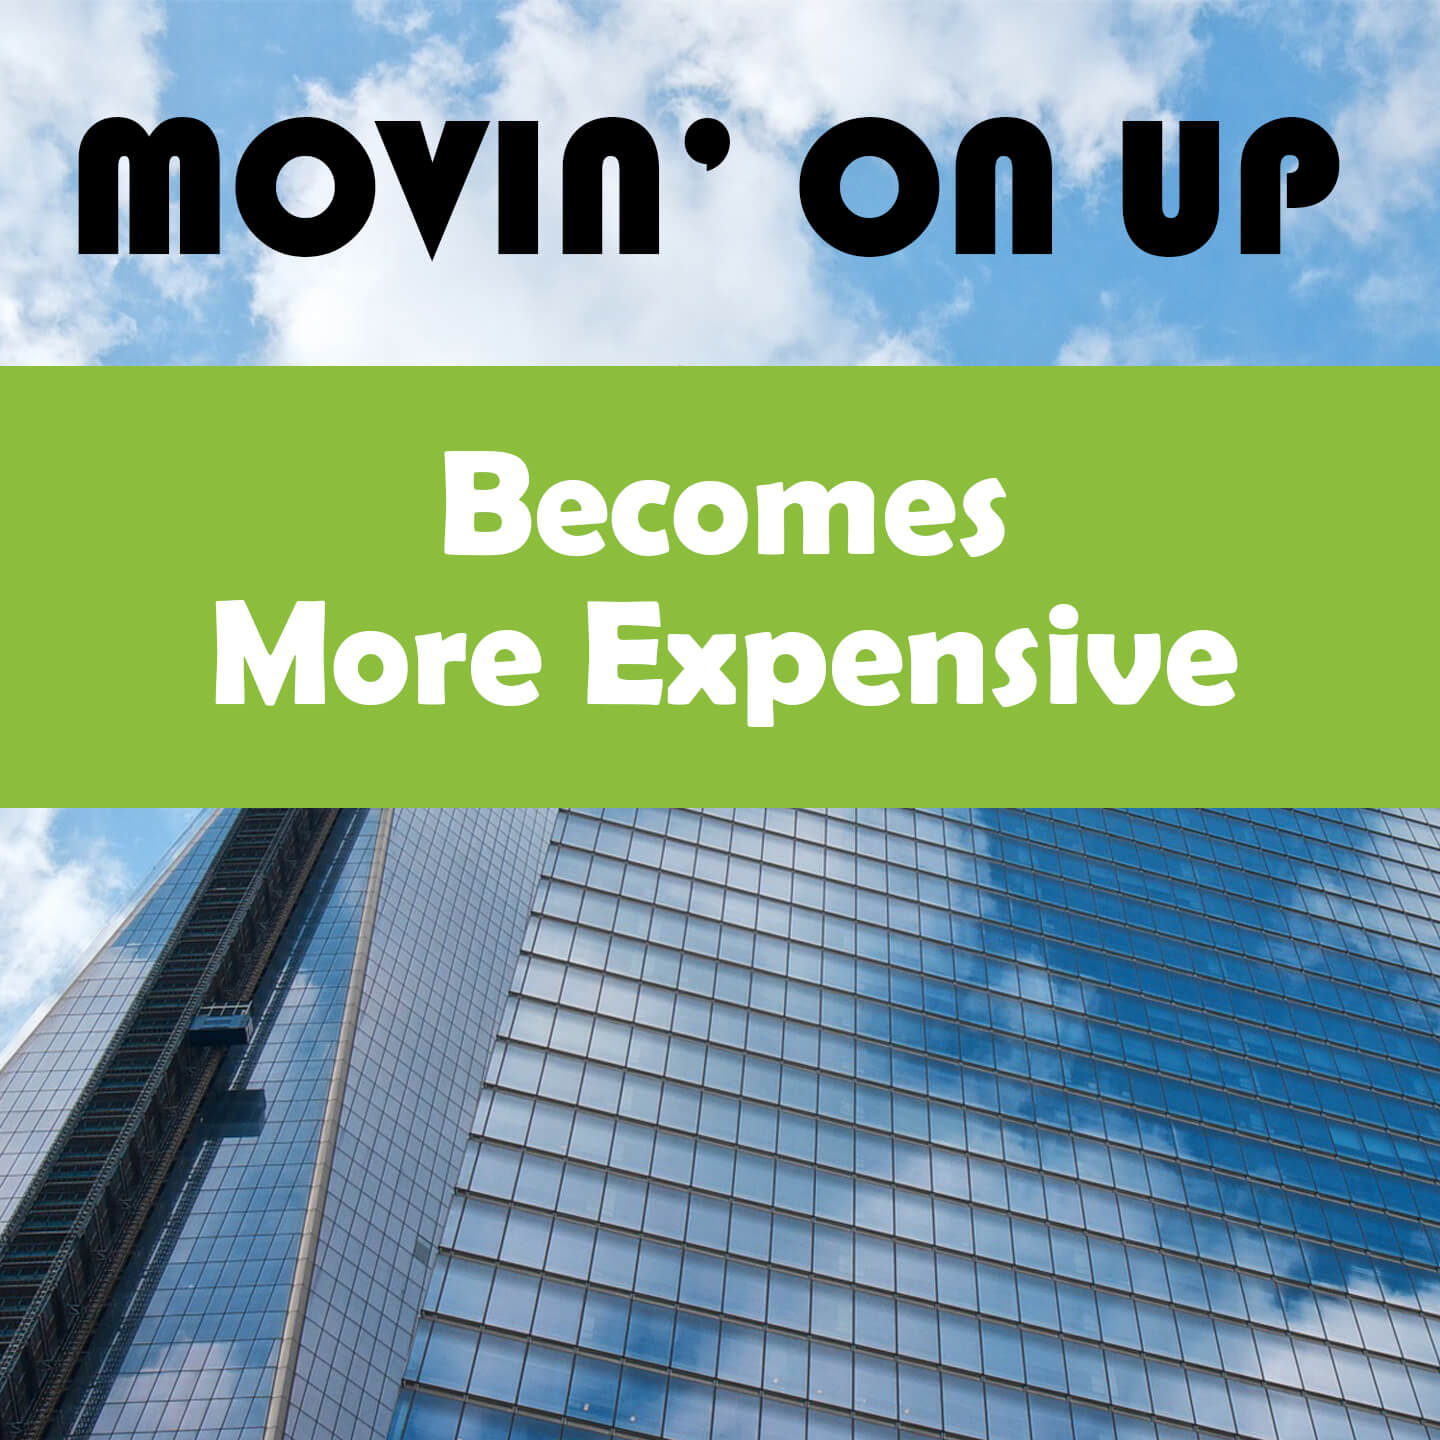 movin' on up moving expenses